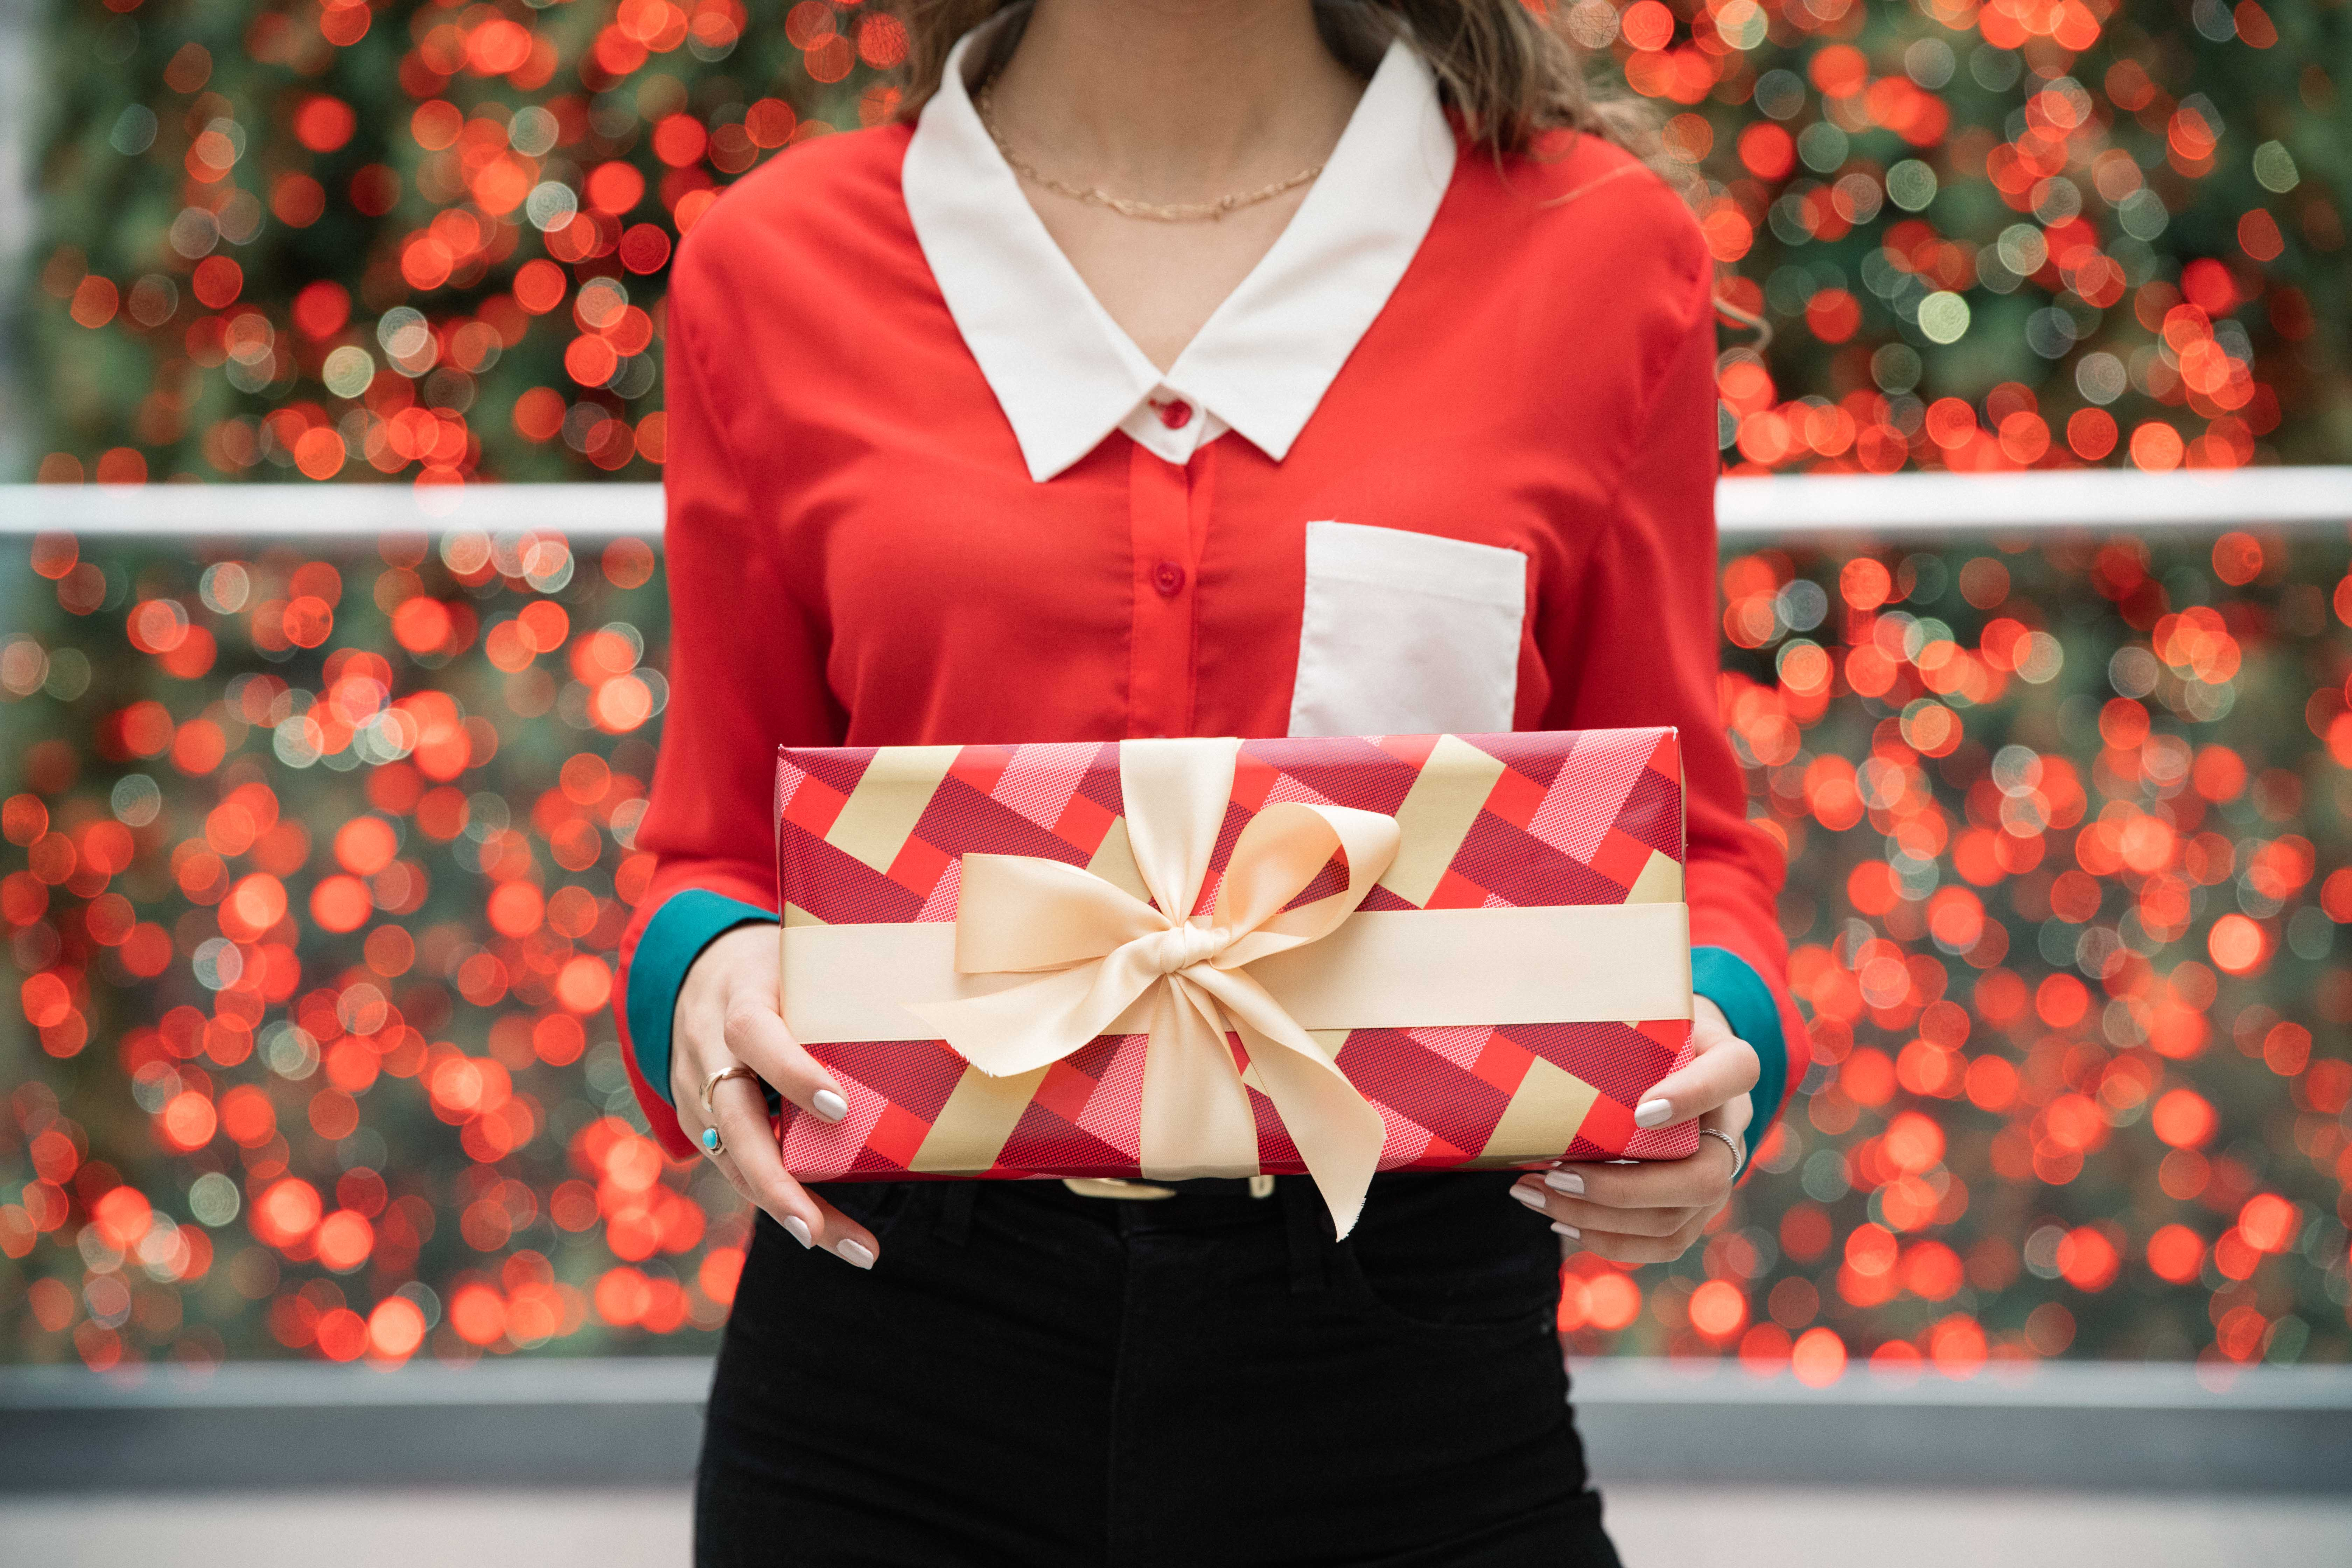 These Calgary malls are taking the stress out of gift shopping